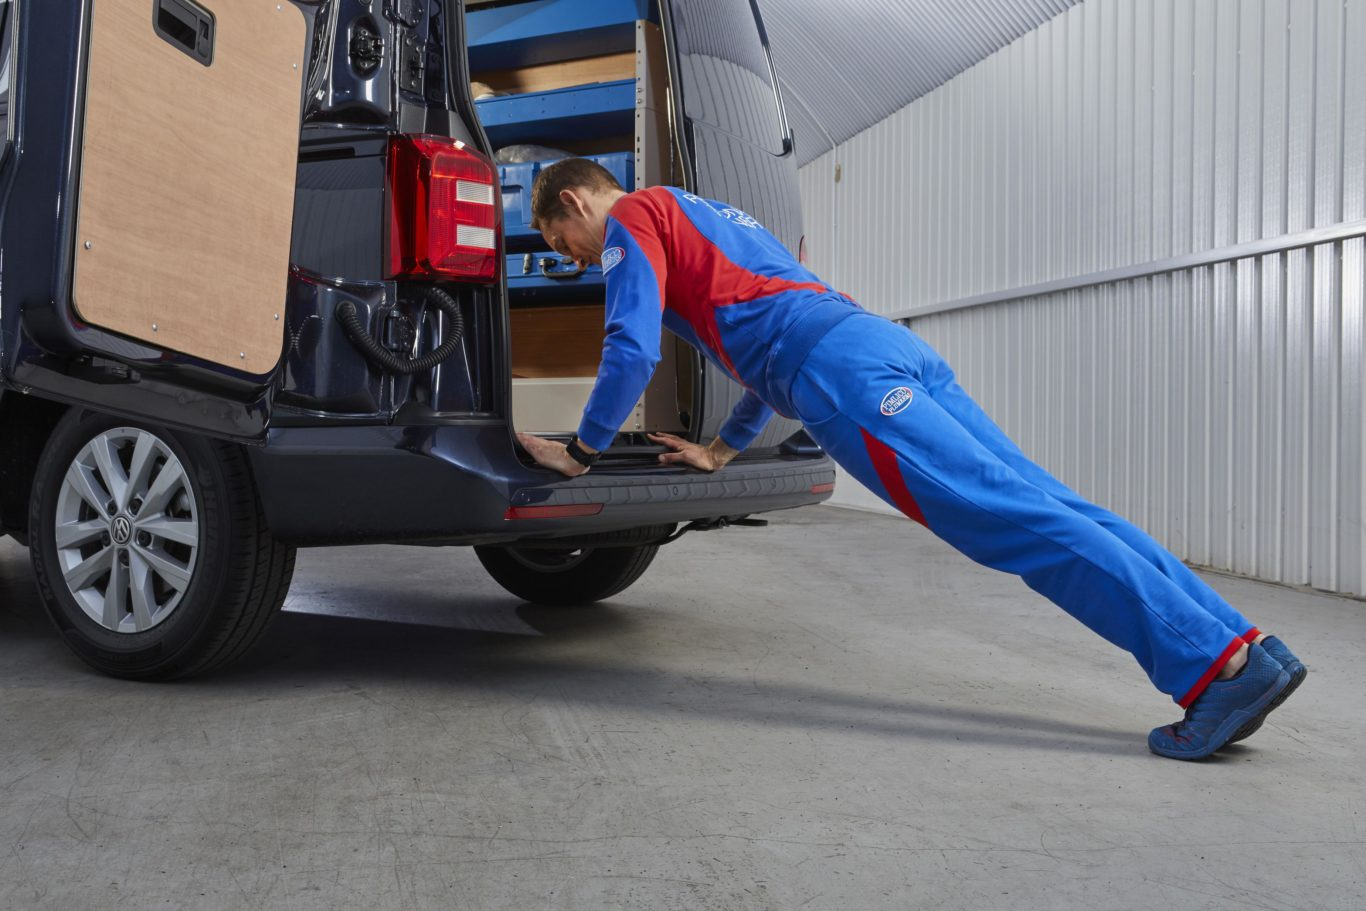 Even press-ups can be undertaken with the help of a van